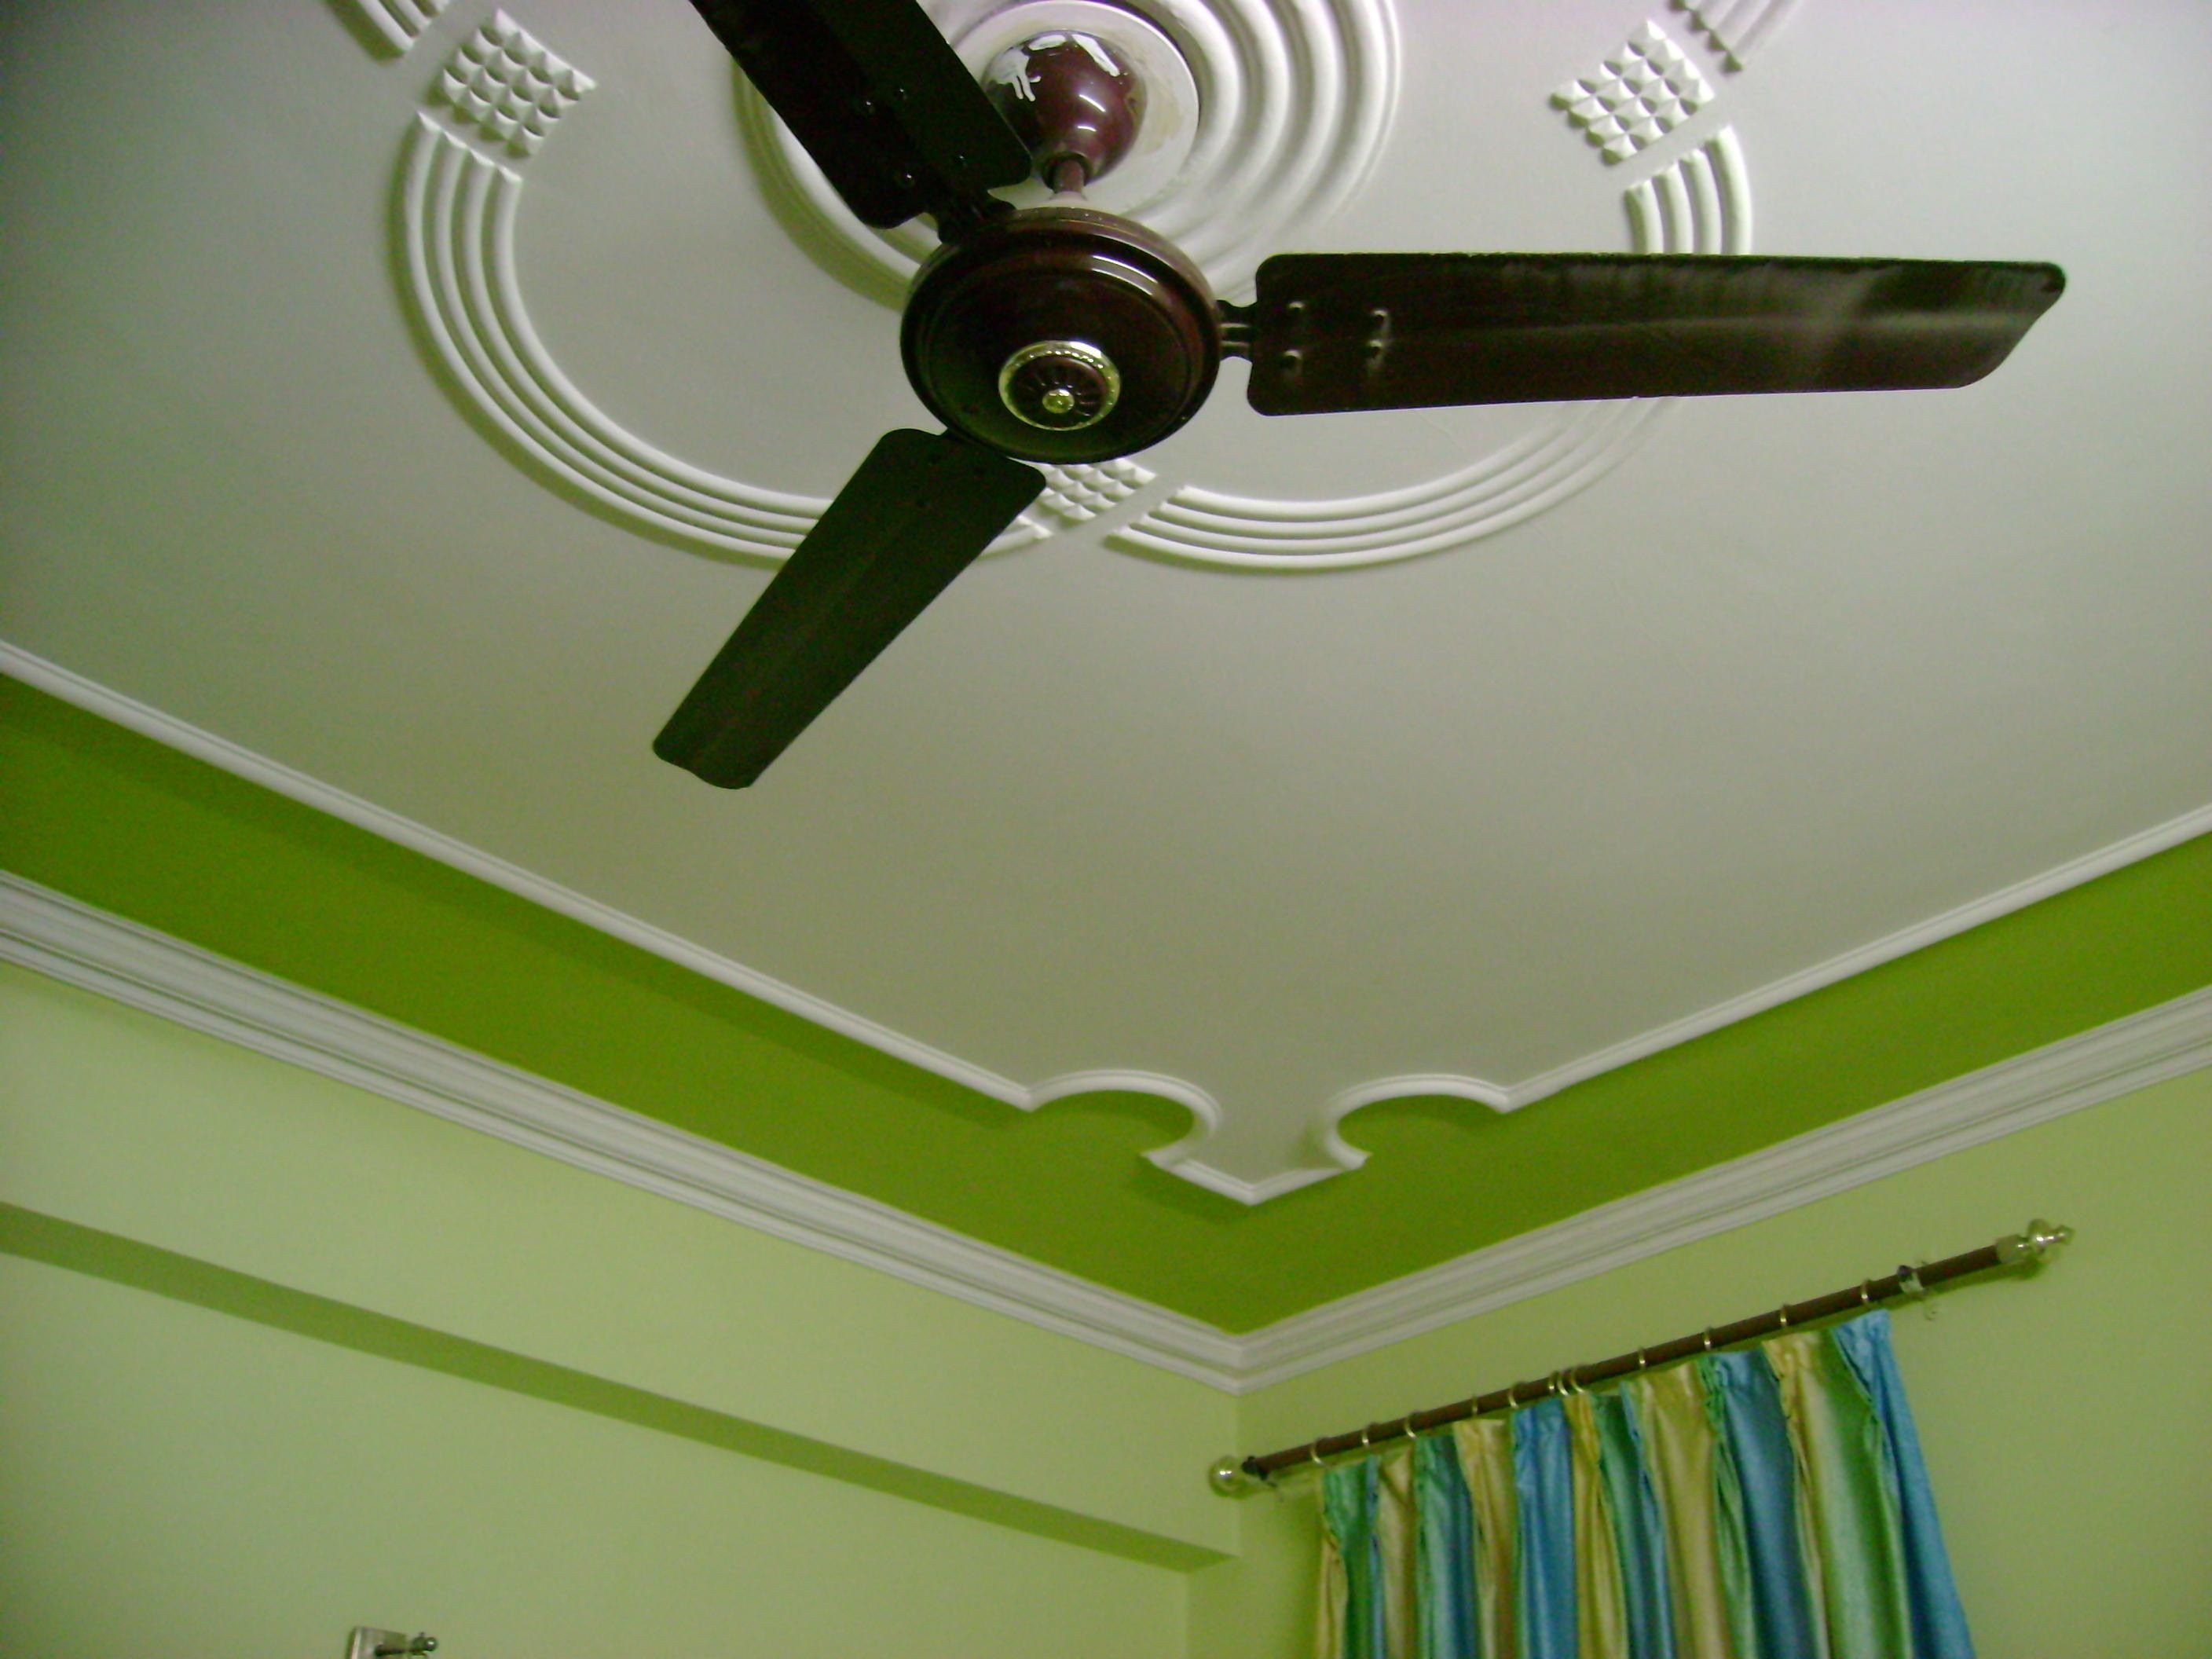 House Ceiling Design In India House Ceiling Design In India